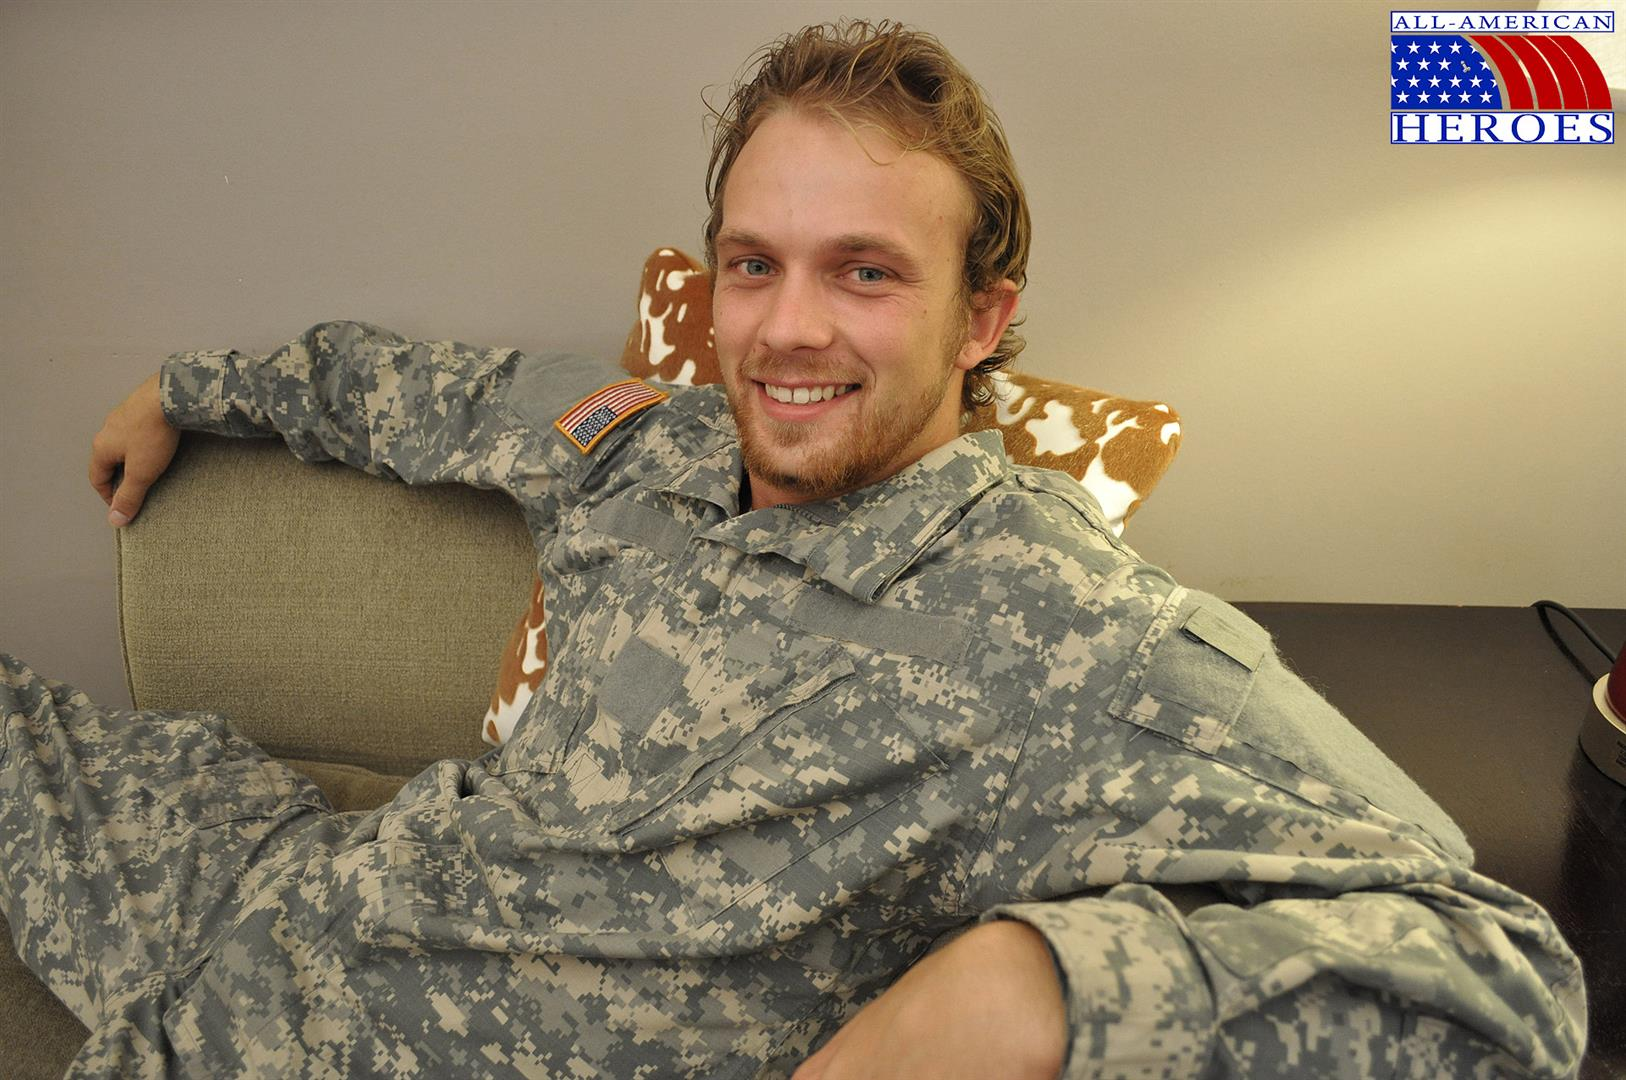 All-American-Heroes-US-Army-Specialist-Clark-Jerking-His-Big-Hairy-Cock-Amateur-Gay-Porn-01 US Army Specialist Masturbating His Hairy Curved Cock